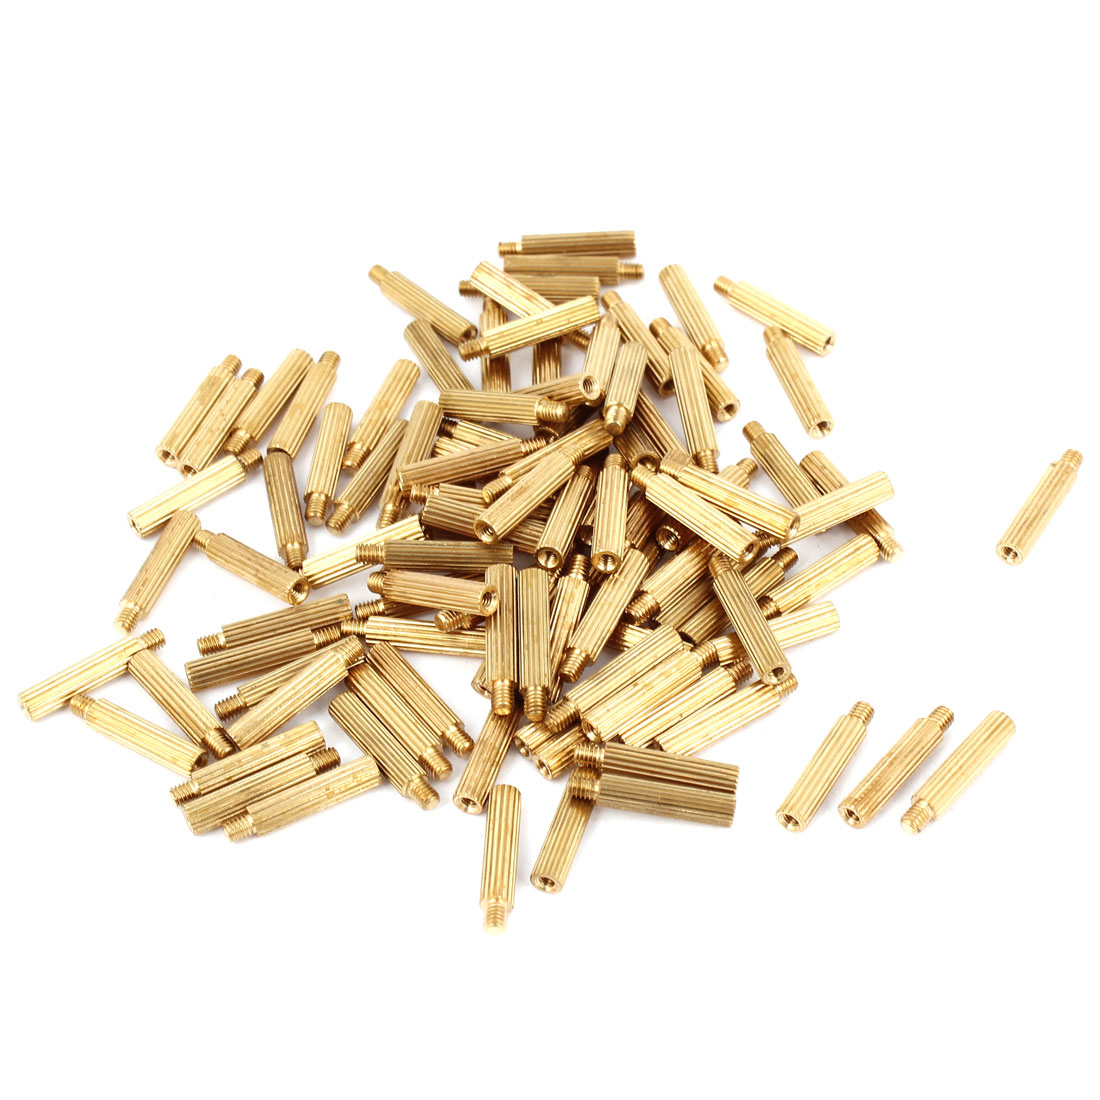 100Pcs Male to Female Thread Grooved Brass Pillars Standoff M2x14mm